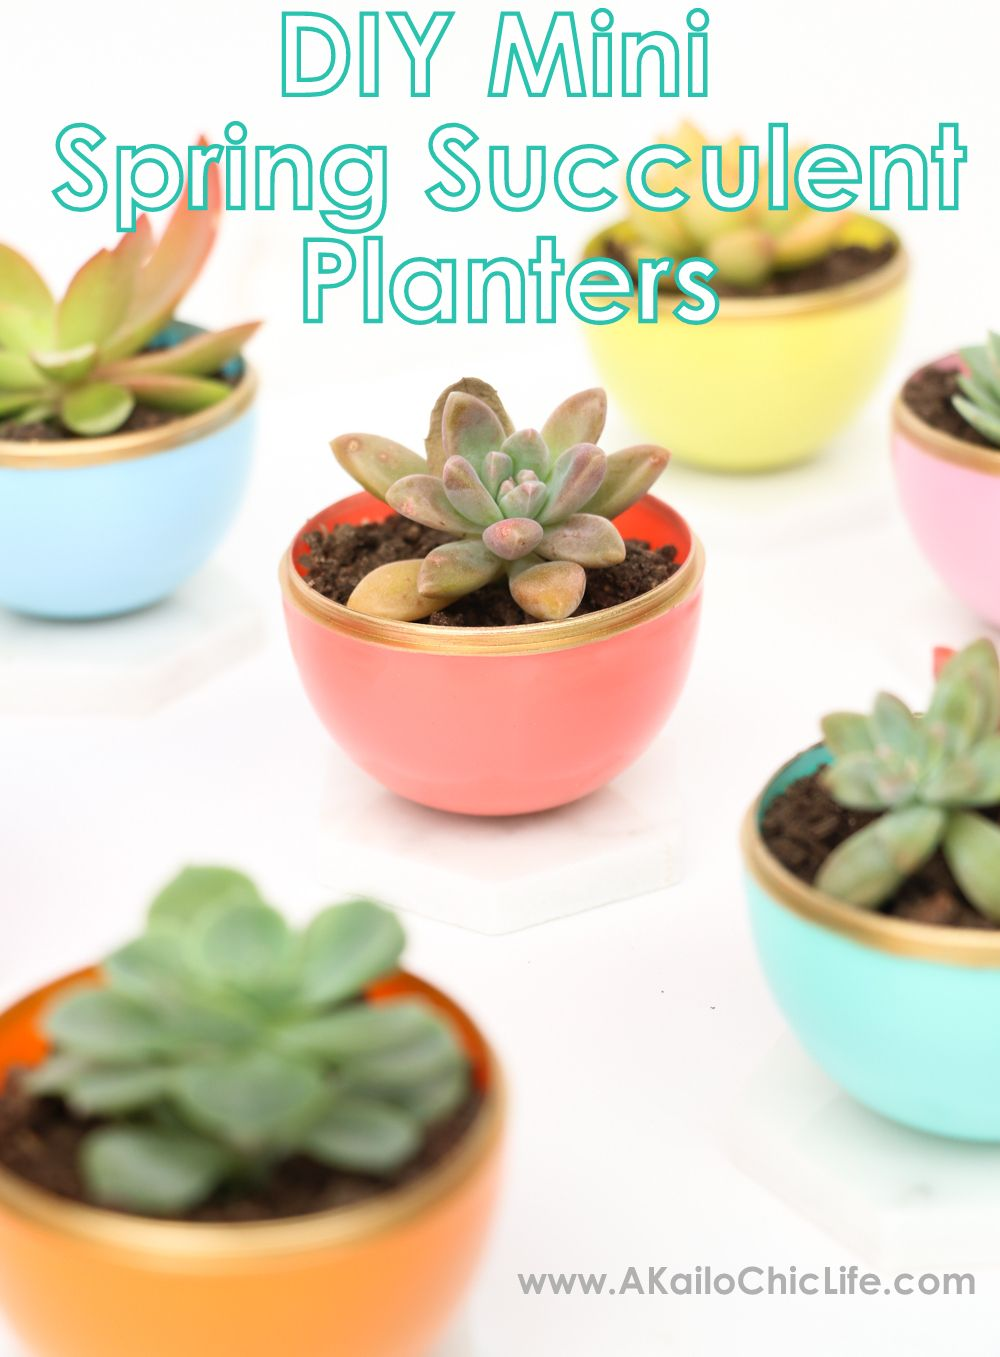 Craft It Diy Mini Spring Succulent Planters Succulent Pots Diy Succulent Planter Diy Succulents Diy